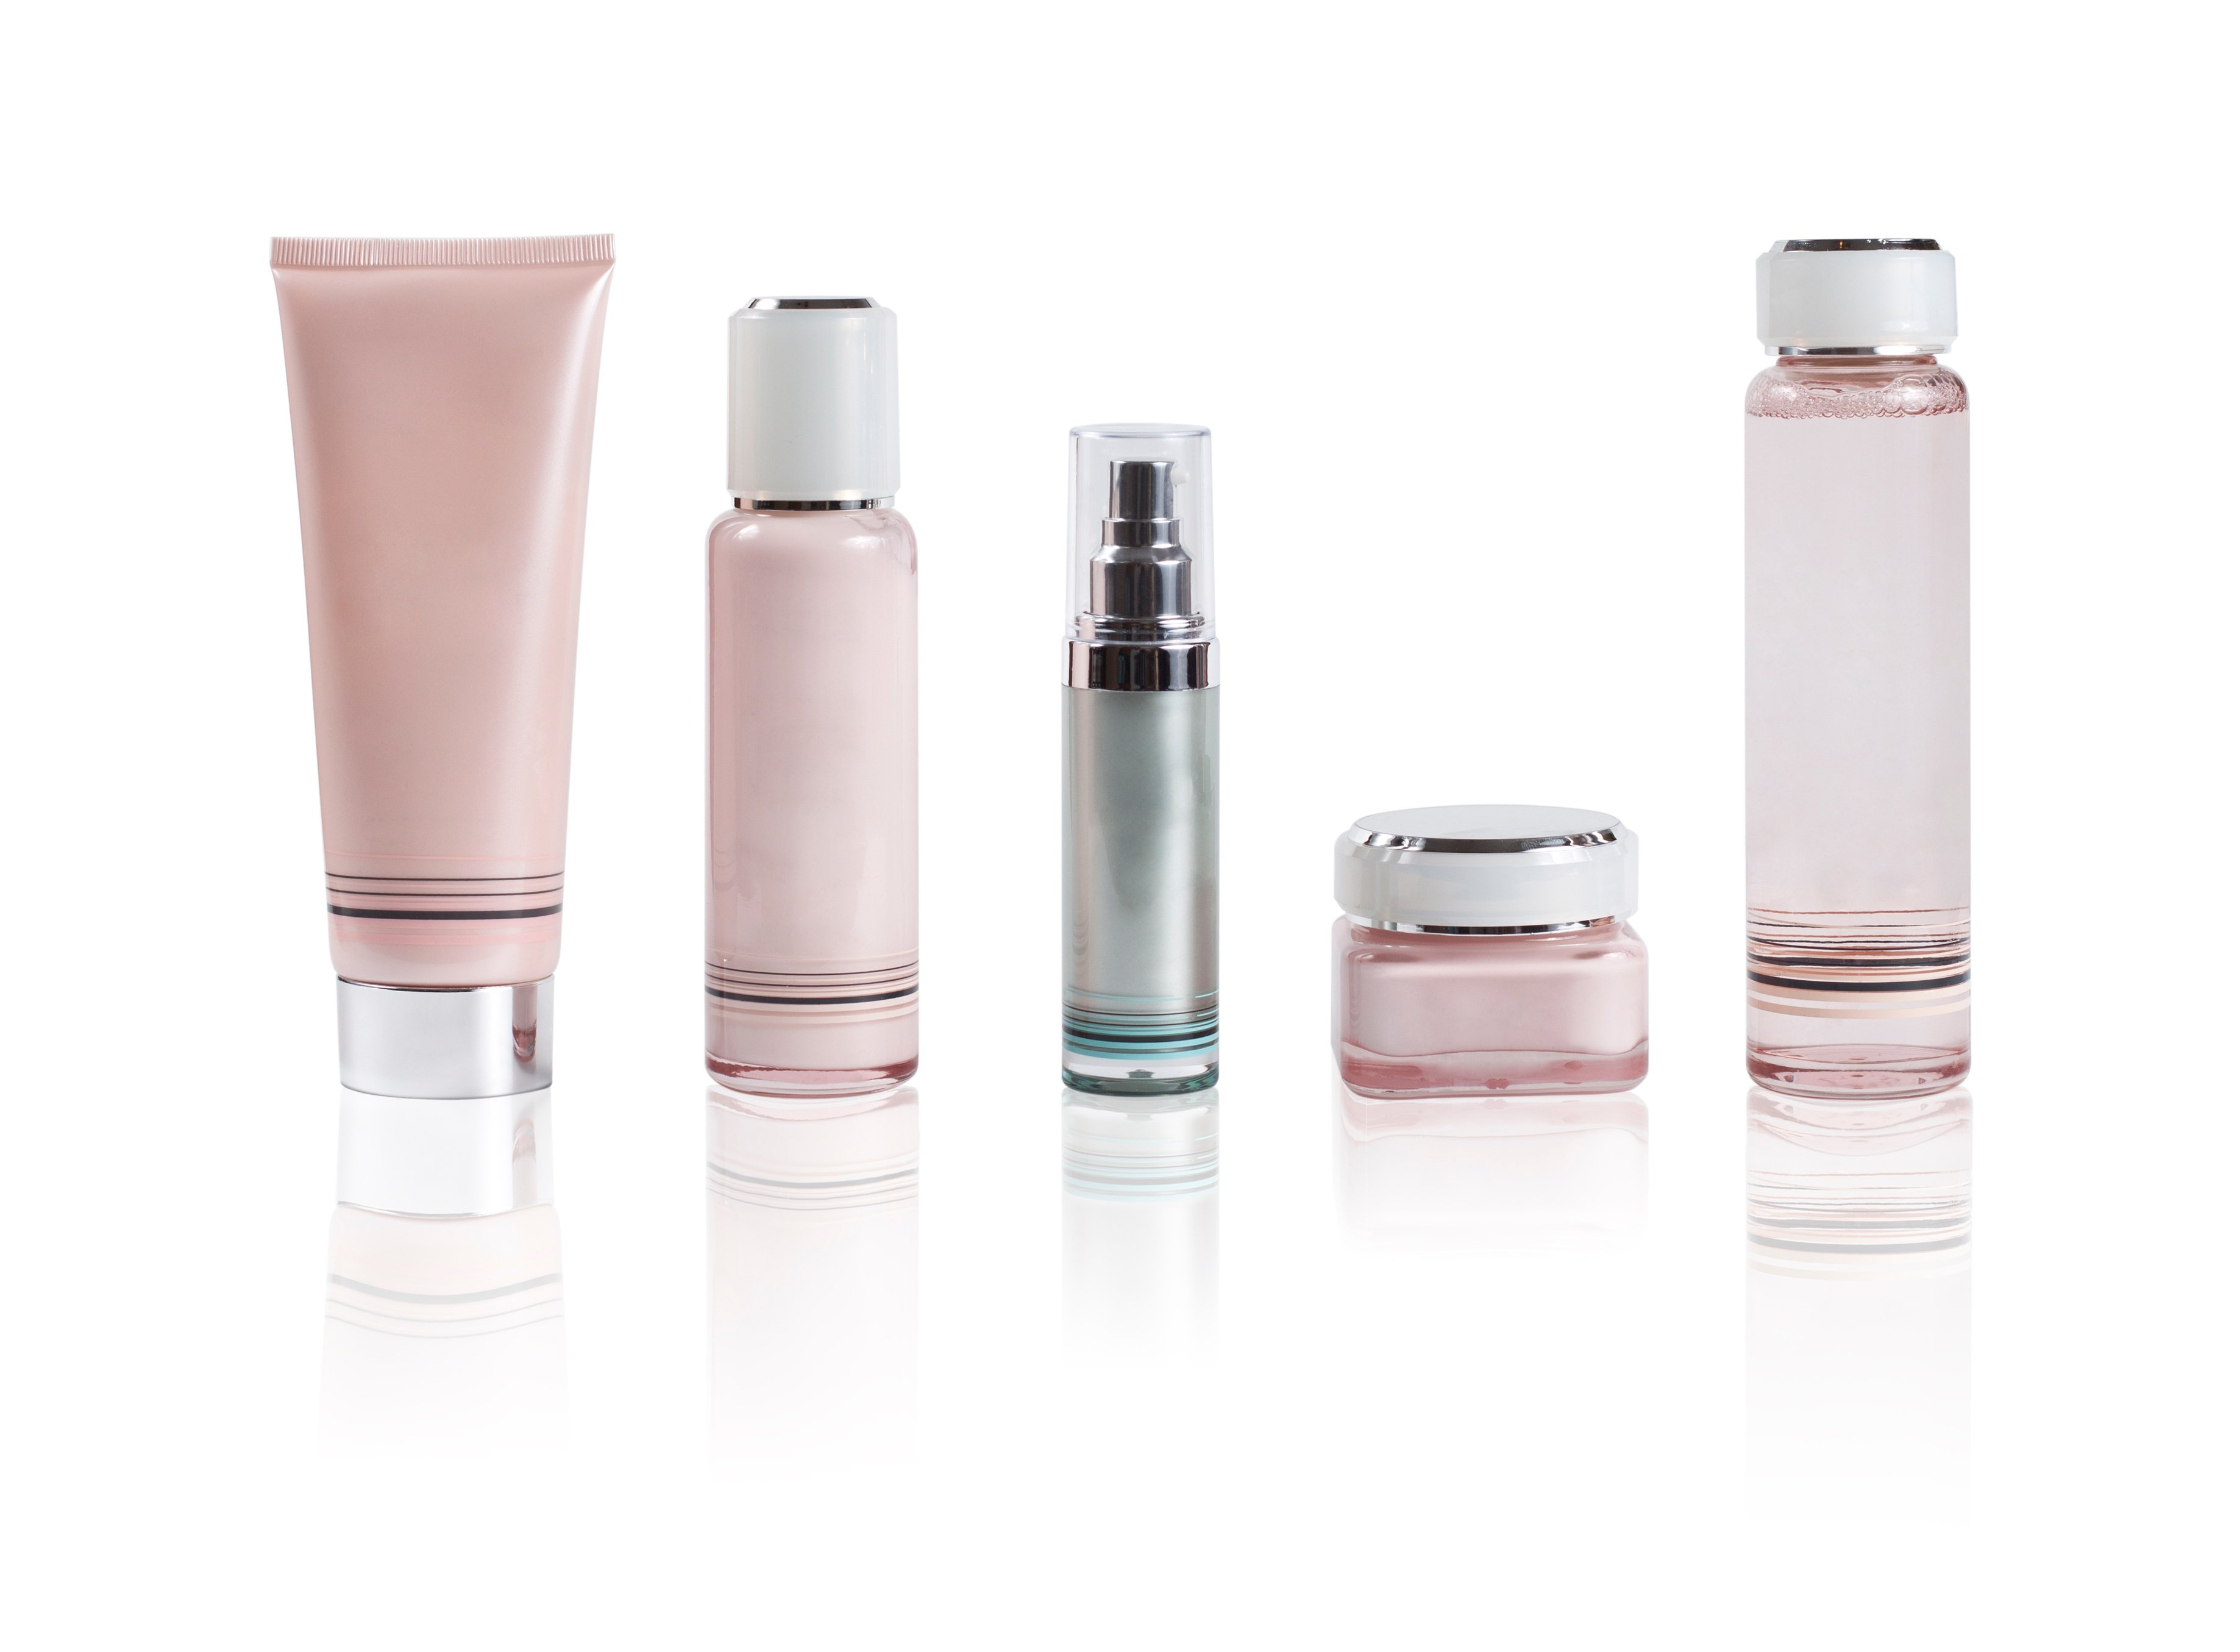 cosmetic products iStock